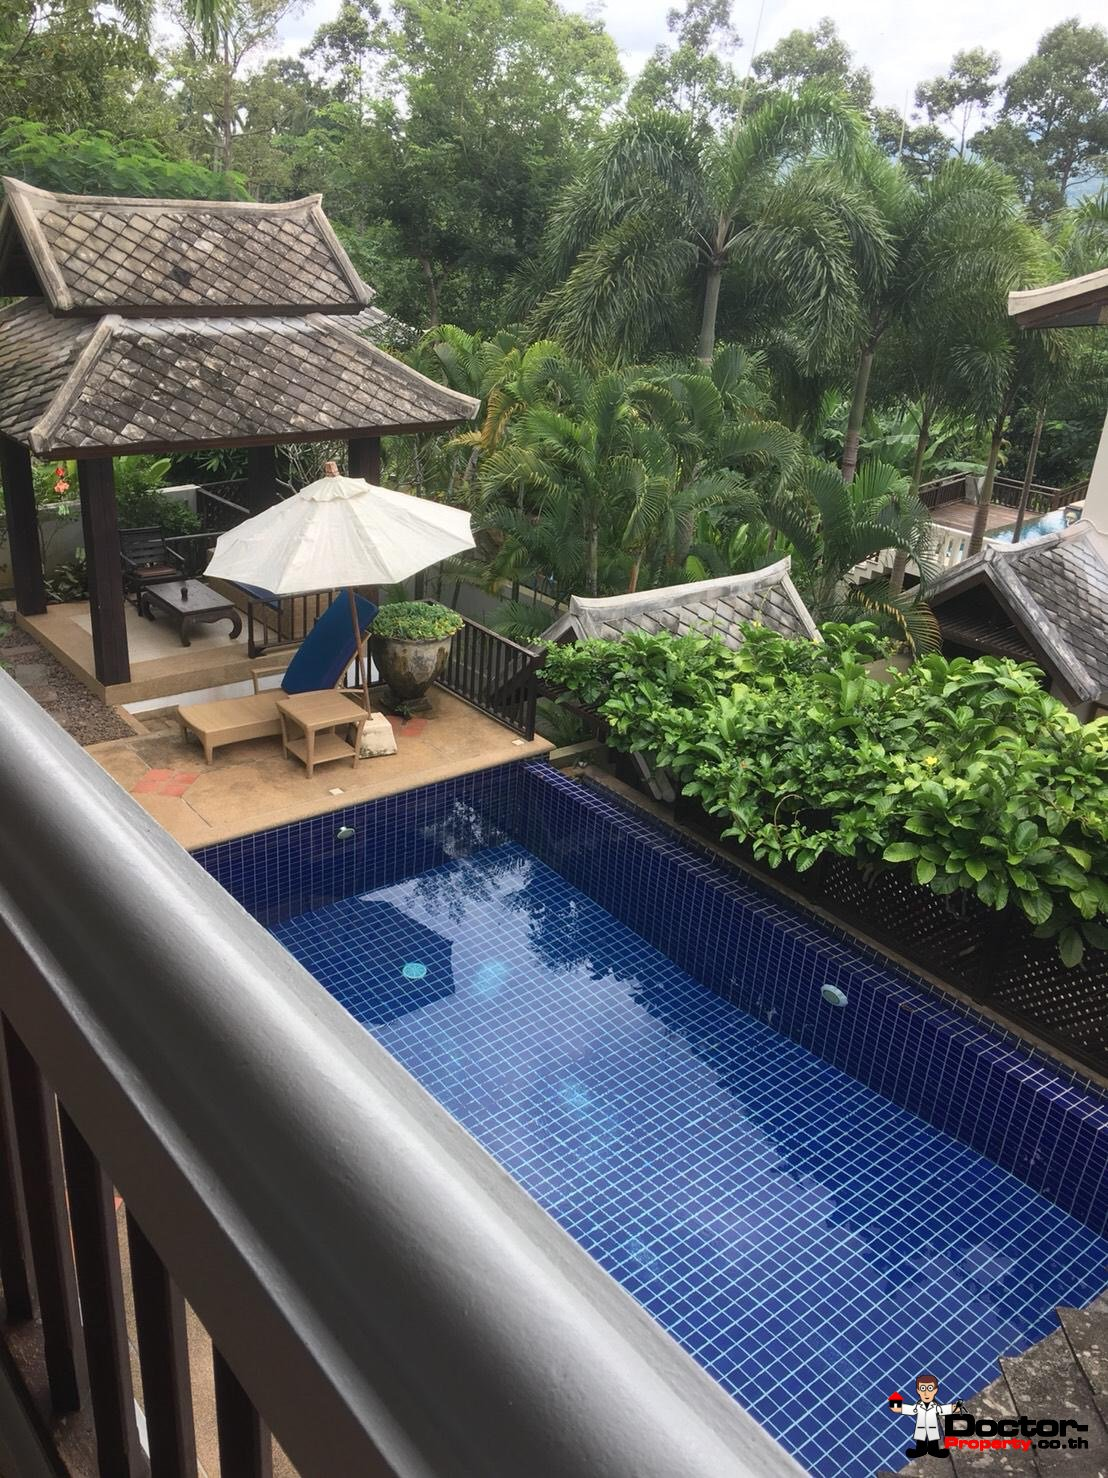 4 Bedroom Privat Pool Villa - Lamai - Koh Samui - for sale